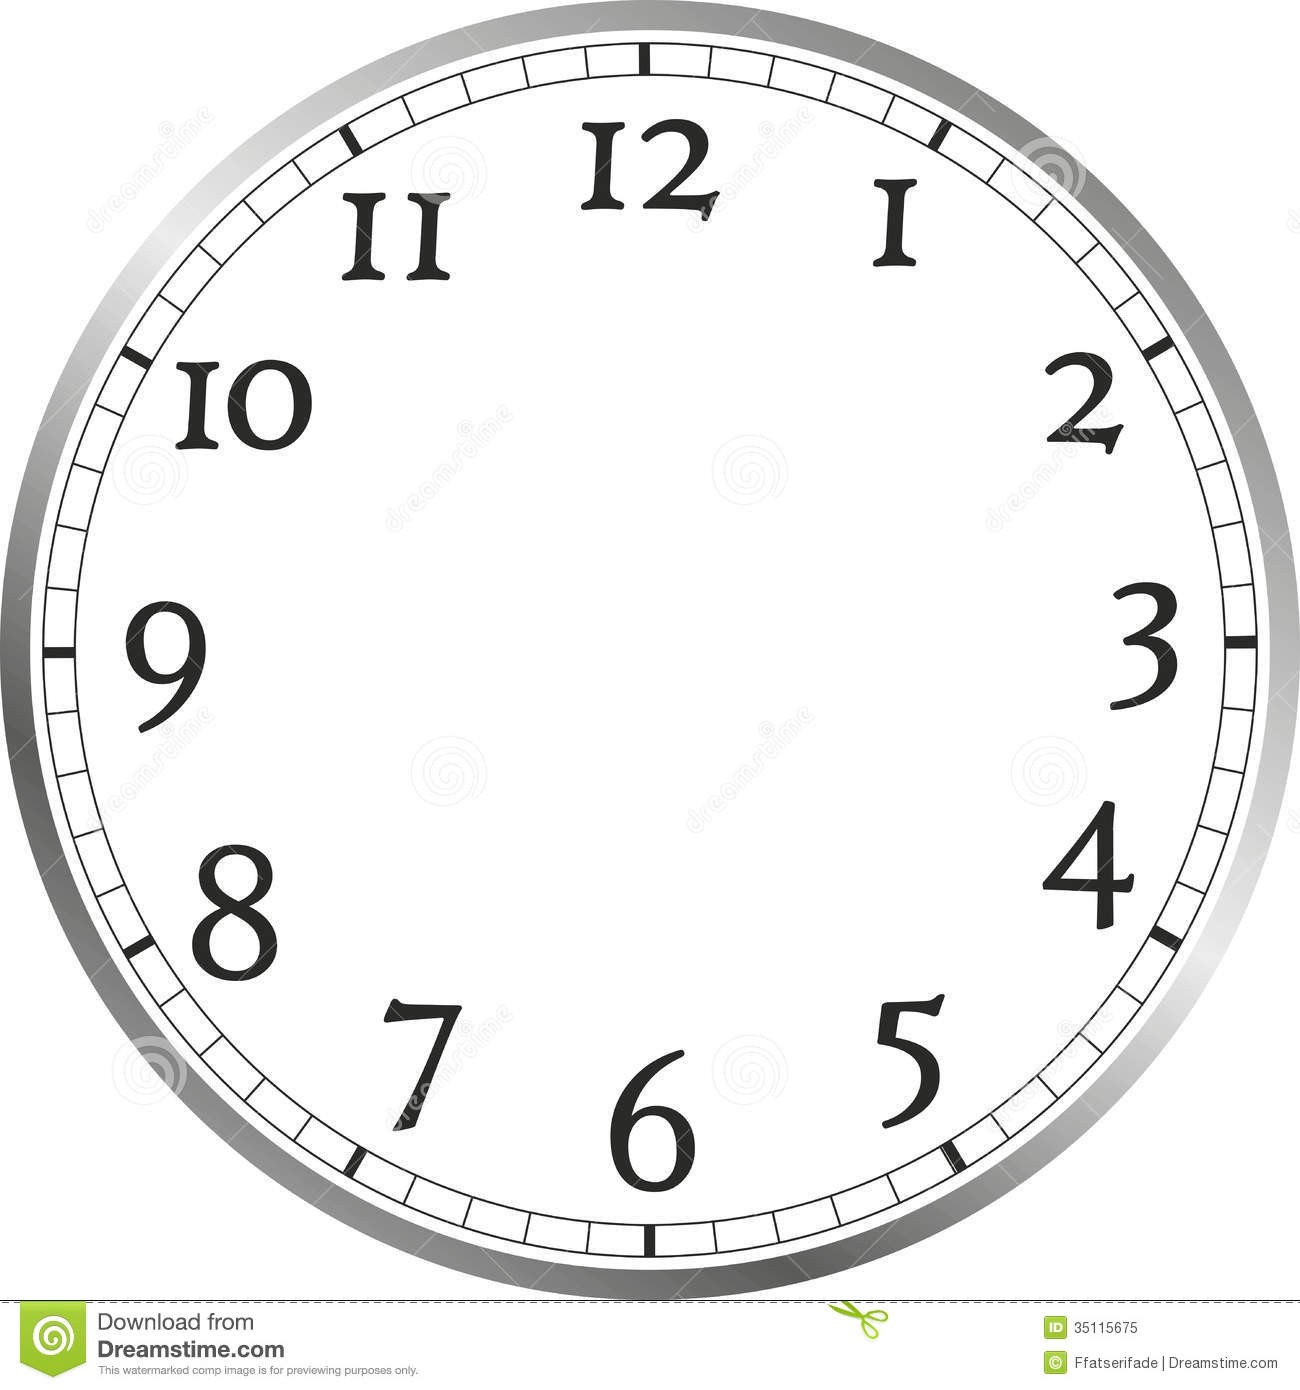 Free Clip Art Picture Of A Clock Face Without Hands